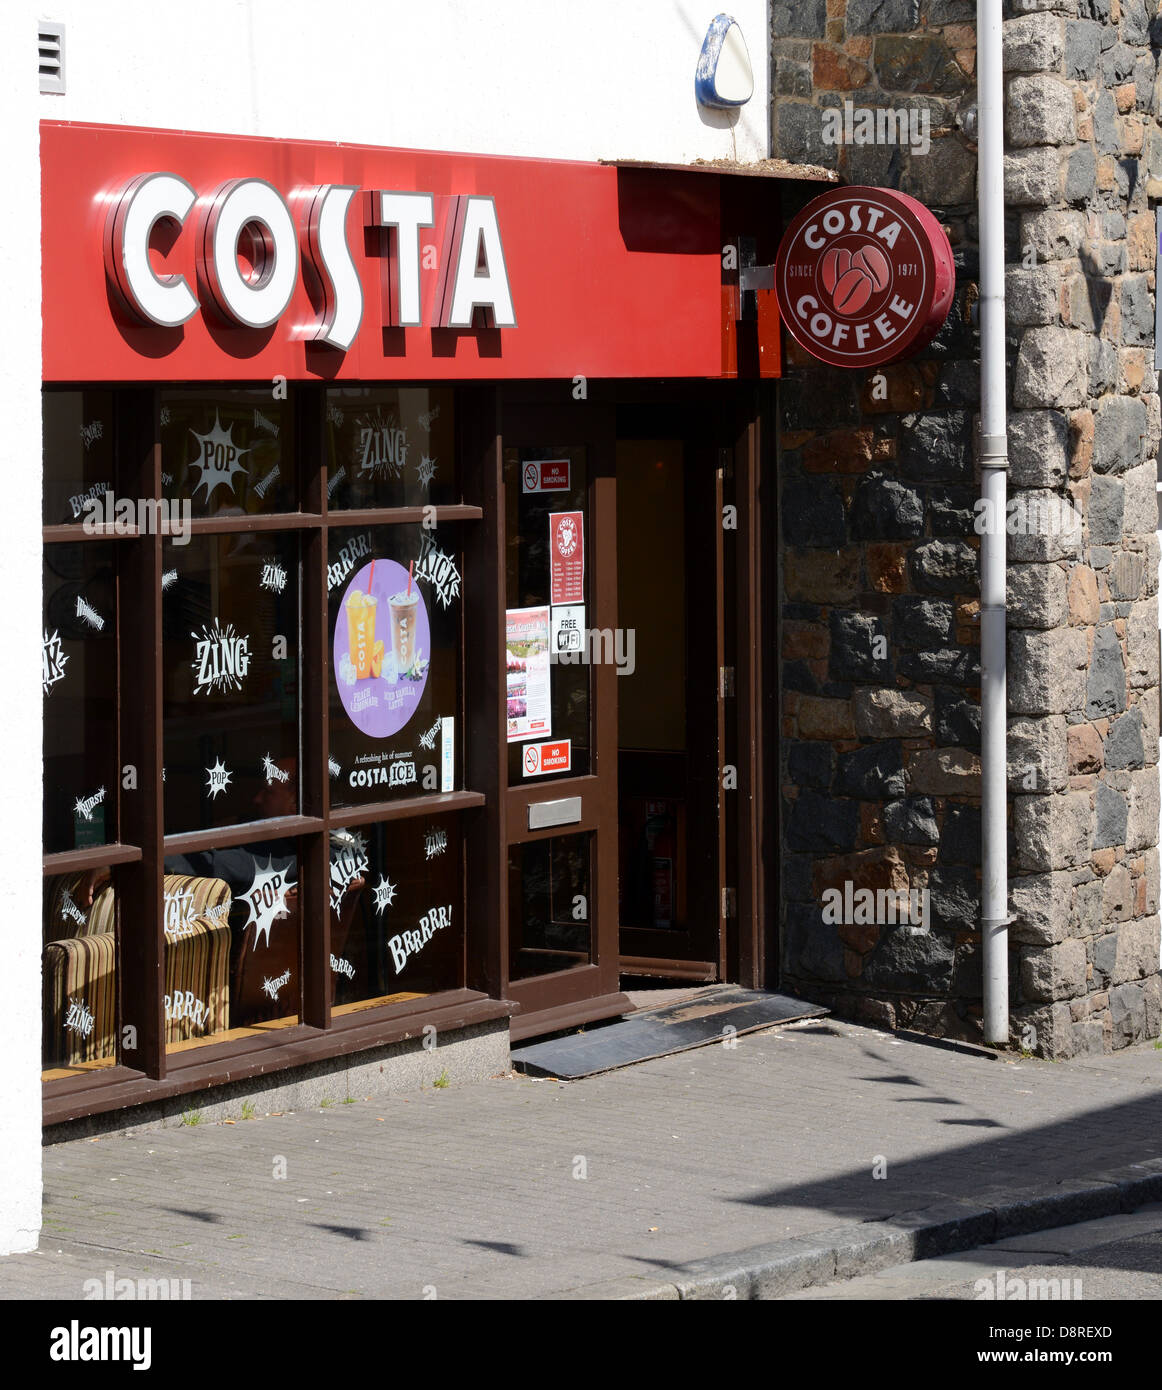 Costa Coffee Shop Exterior Stock Photos Costa Coffee Shop